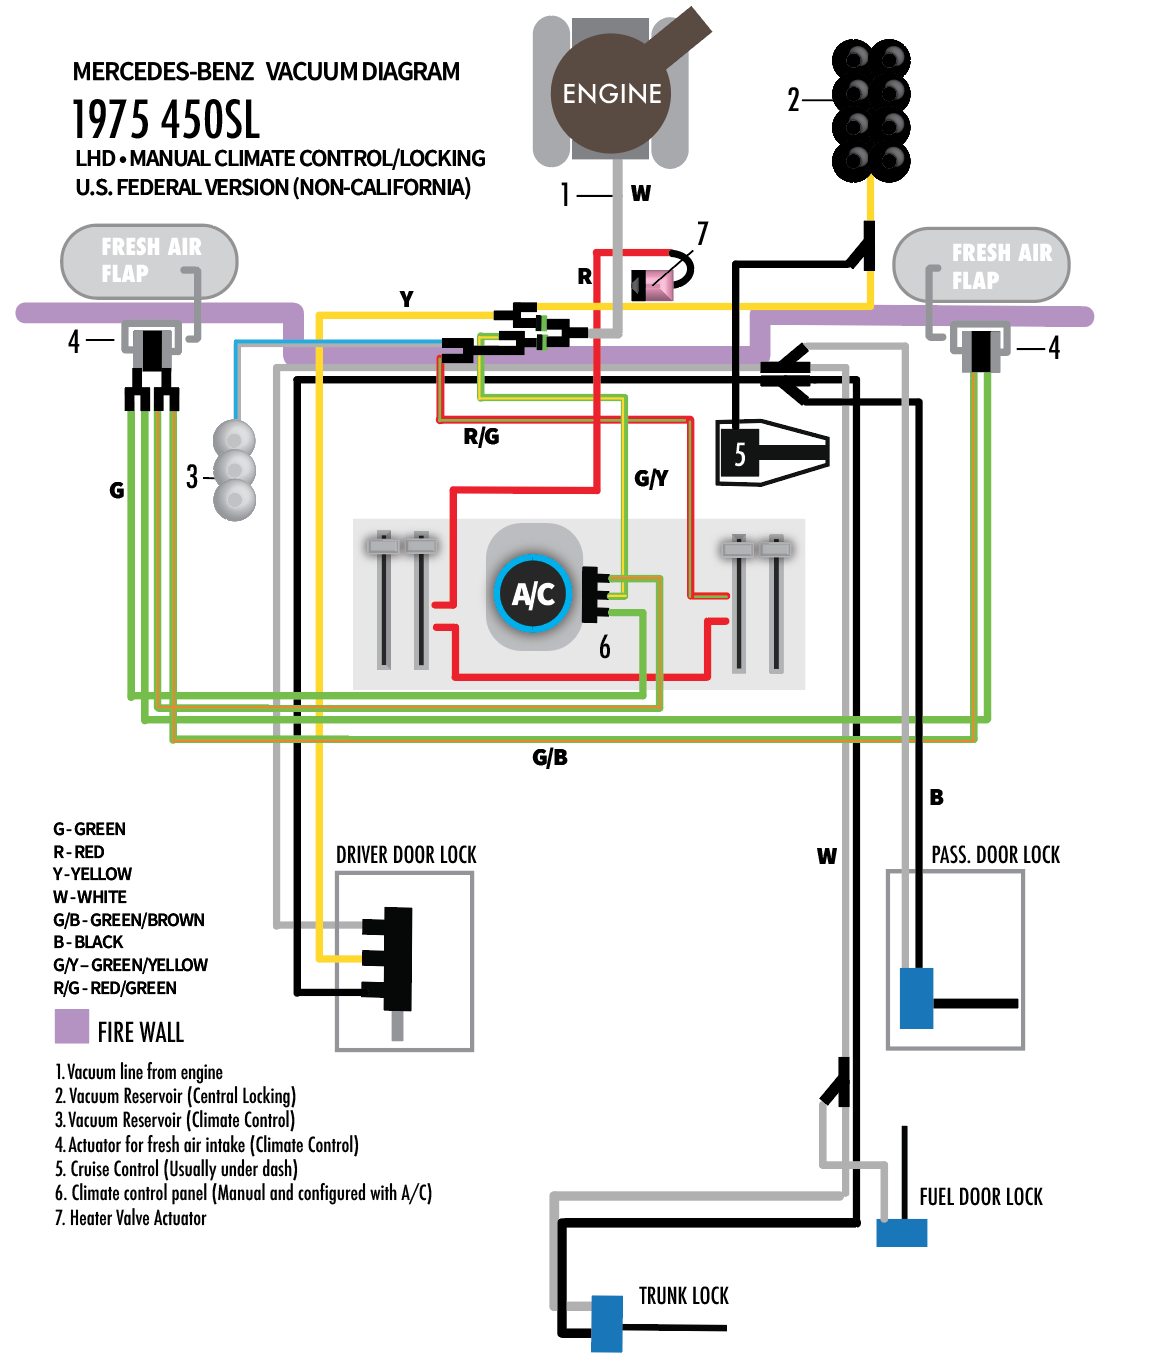 2 Way Radio Wiring Diagram Real Lighting Circuit Mercedes Benz W123 And R107 Diy Vacuum Light Switch Coast 3